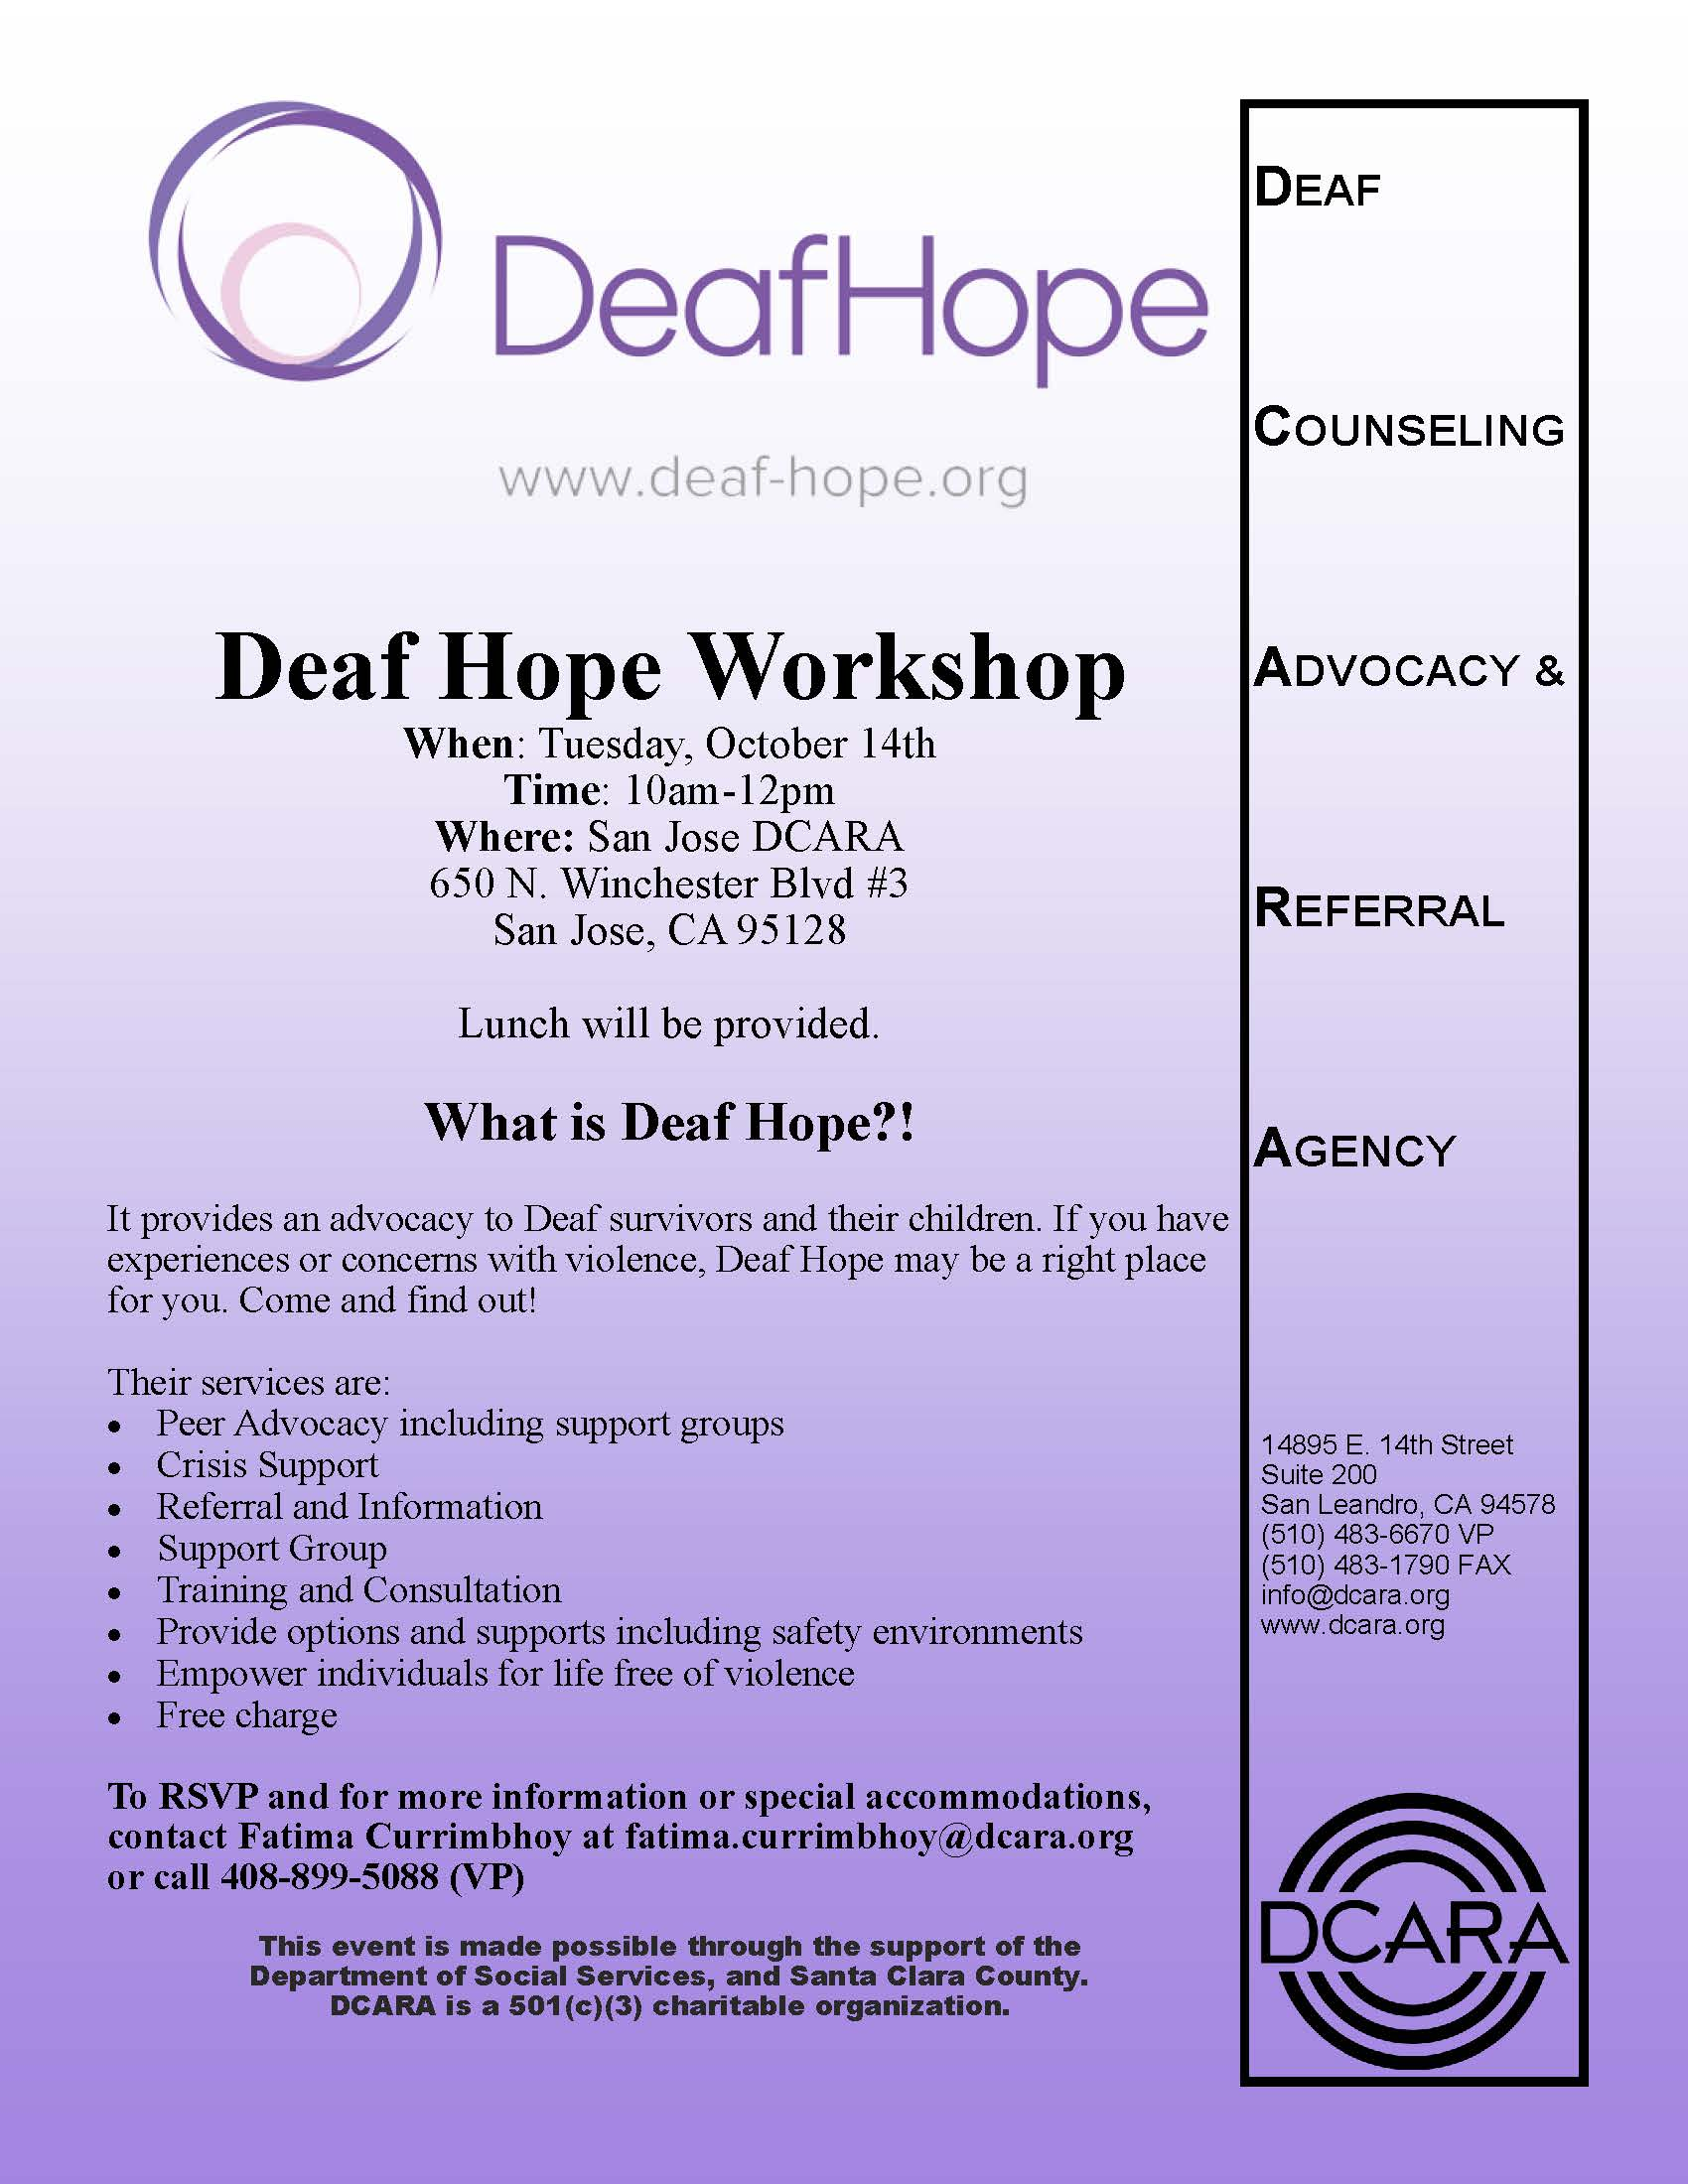 deafhope_ws_flyer